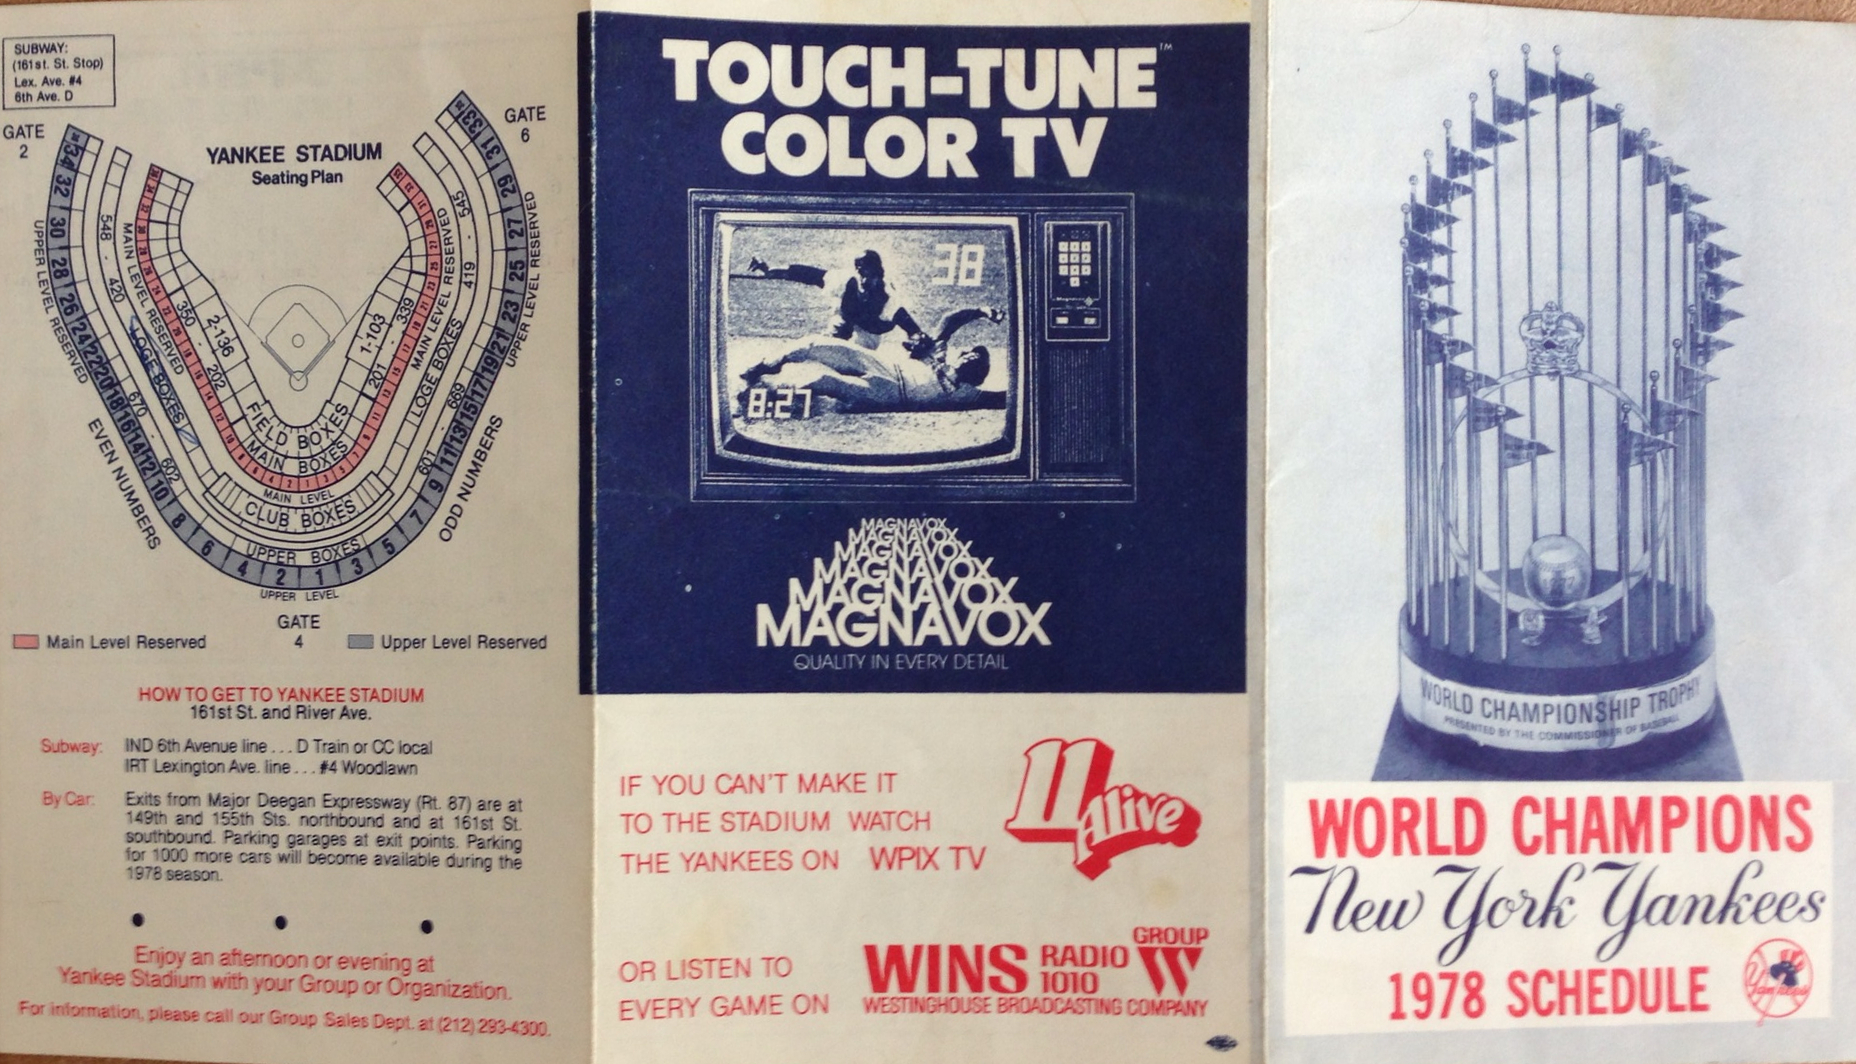 Vintage 1978 Yankees Schedule Including Ticket Prices And Other Surprises